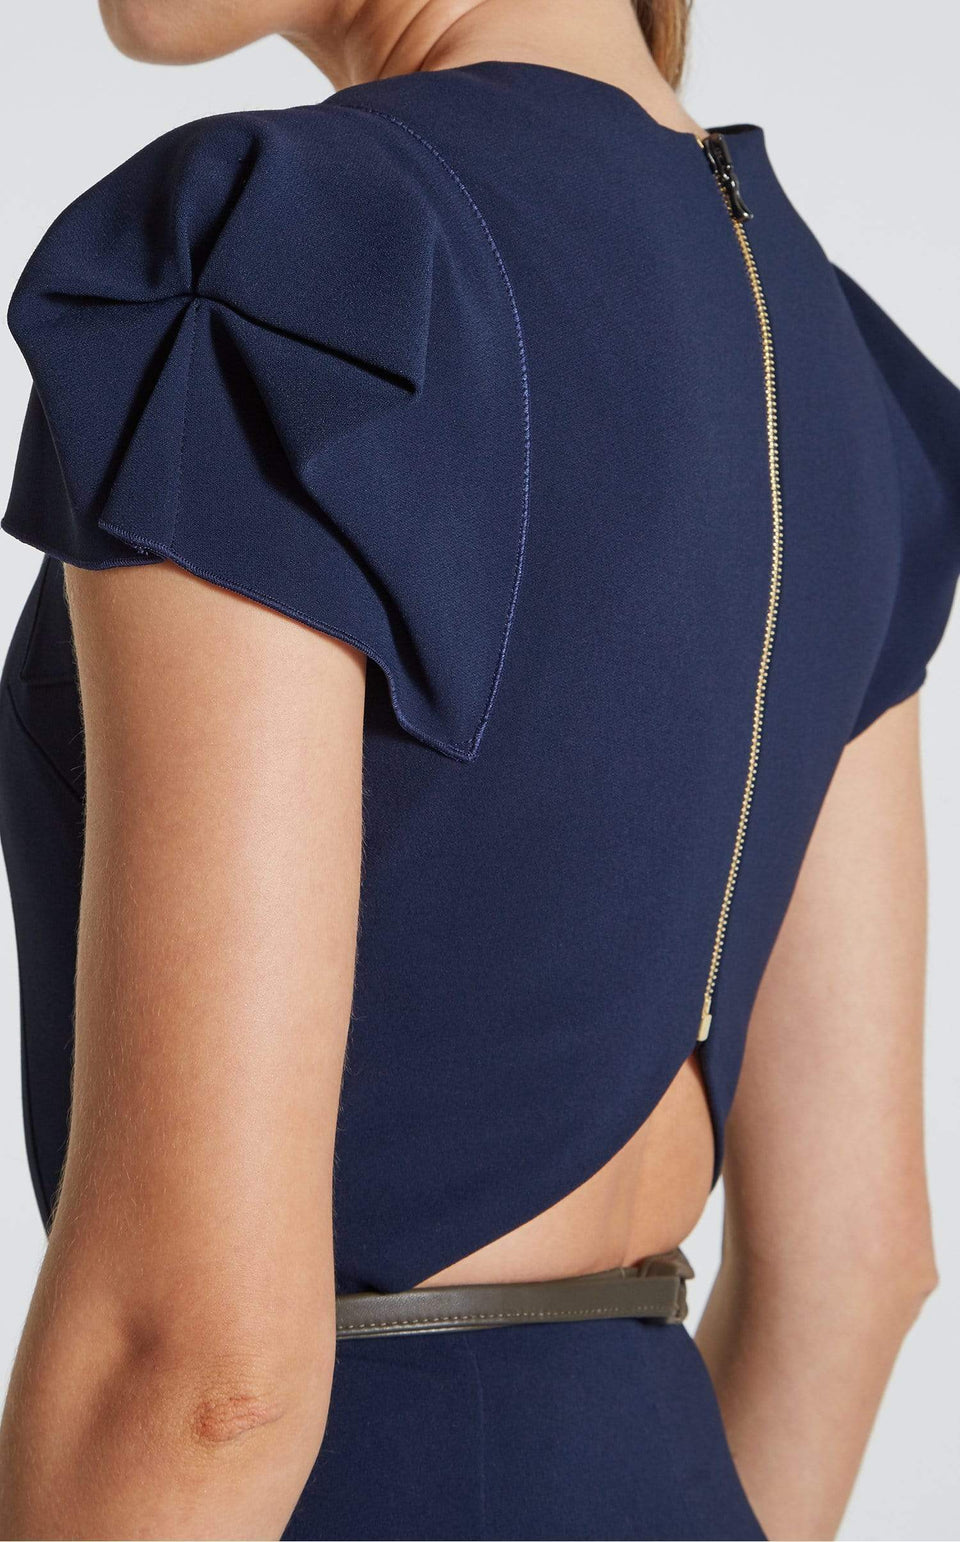 Galaxy Jumpsuit In Navy from Roland Mouret